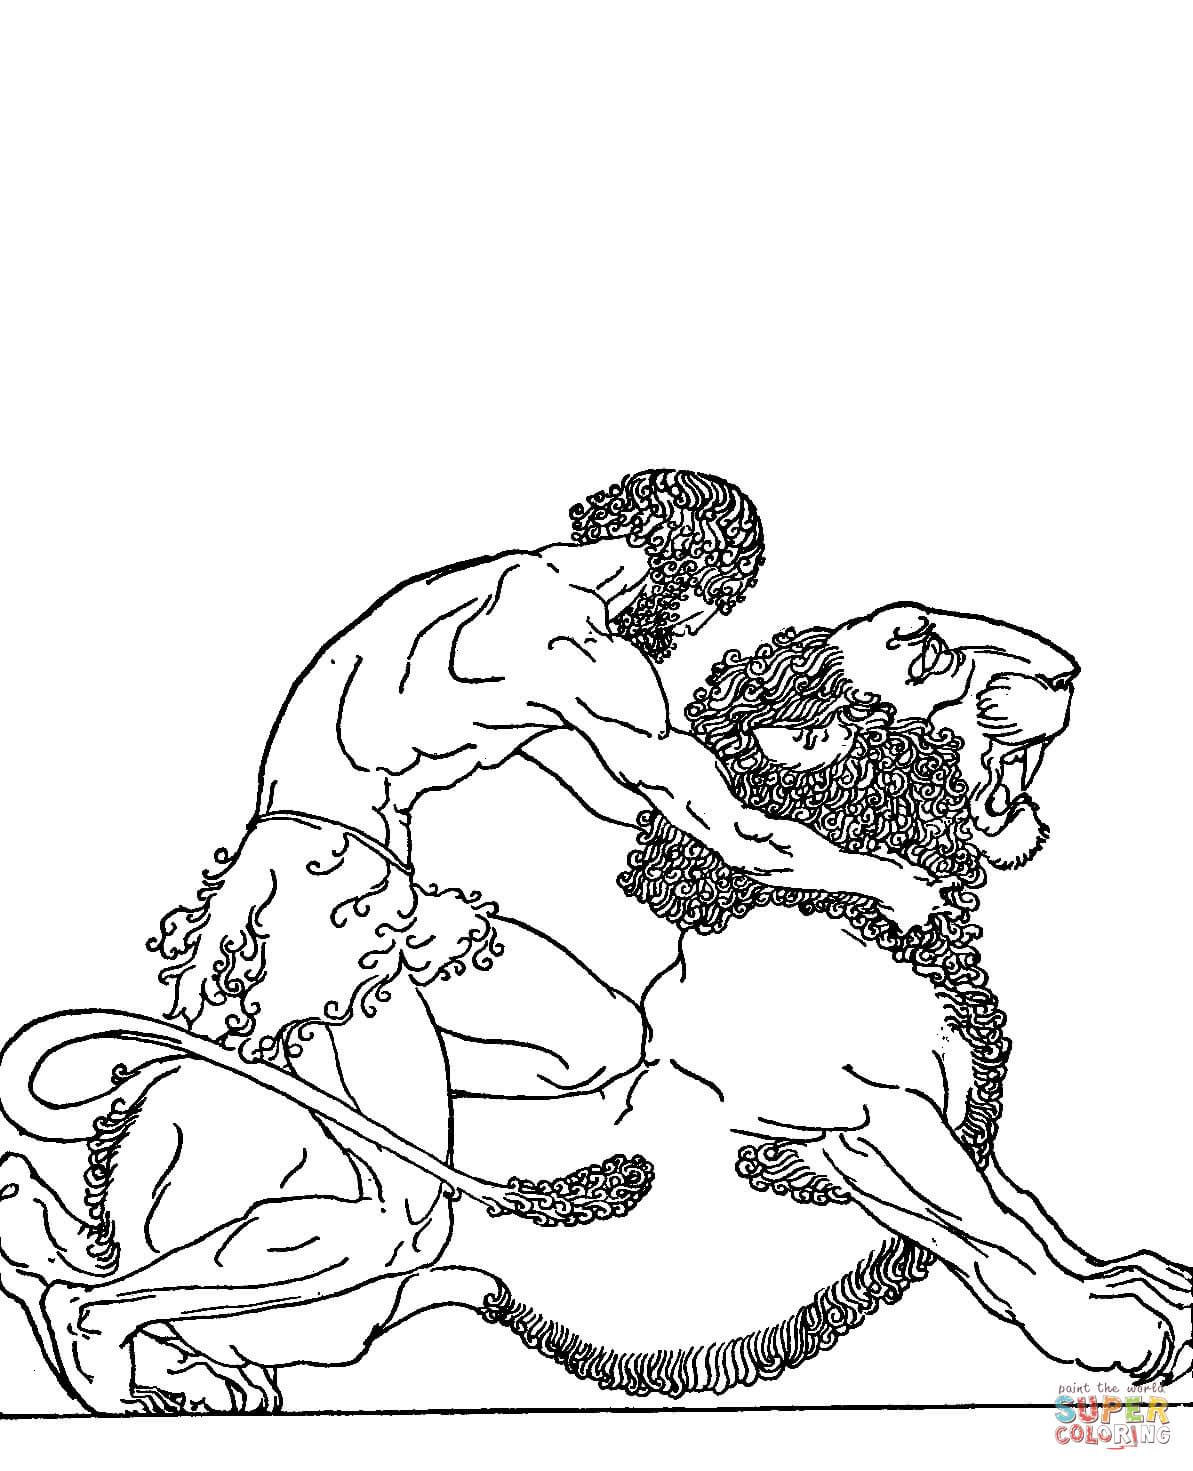 Greek Mythology Coloring Pages | Free Coloring Pages - Coloring Home